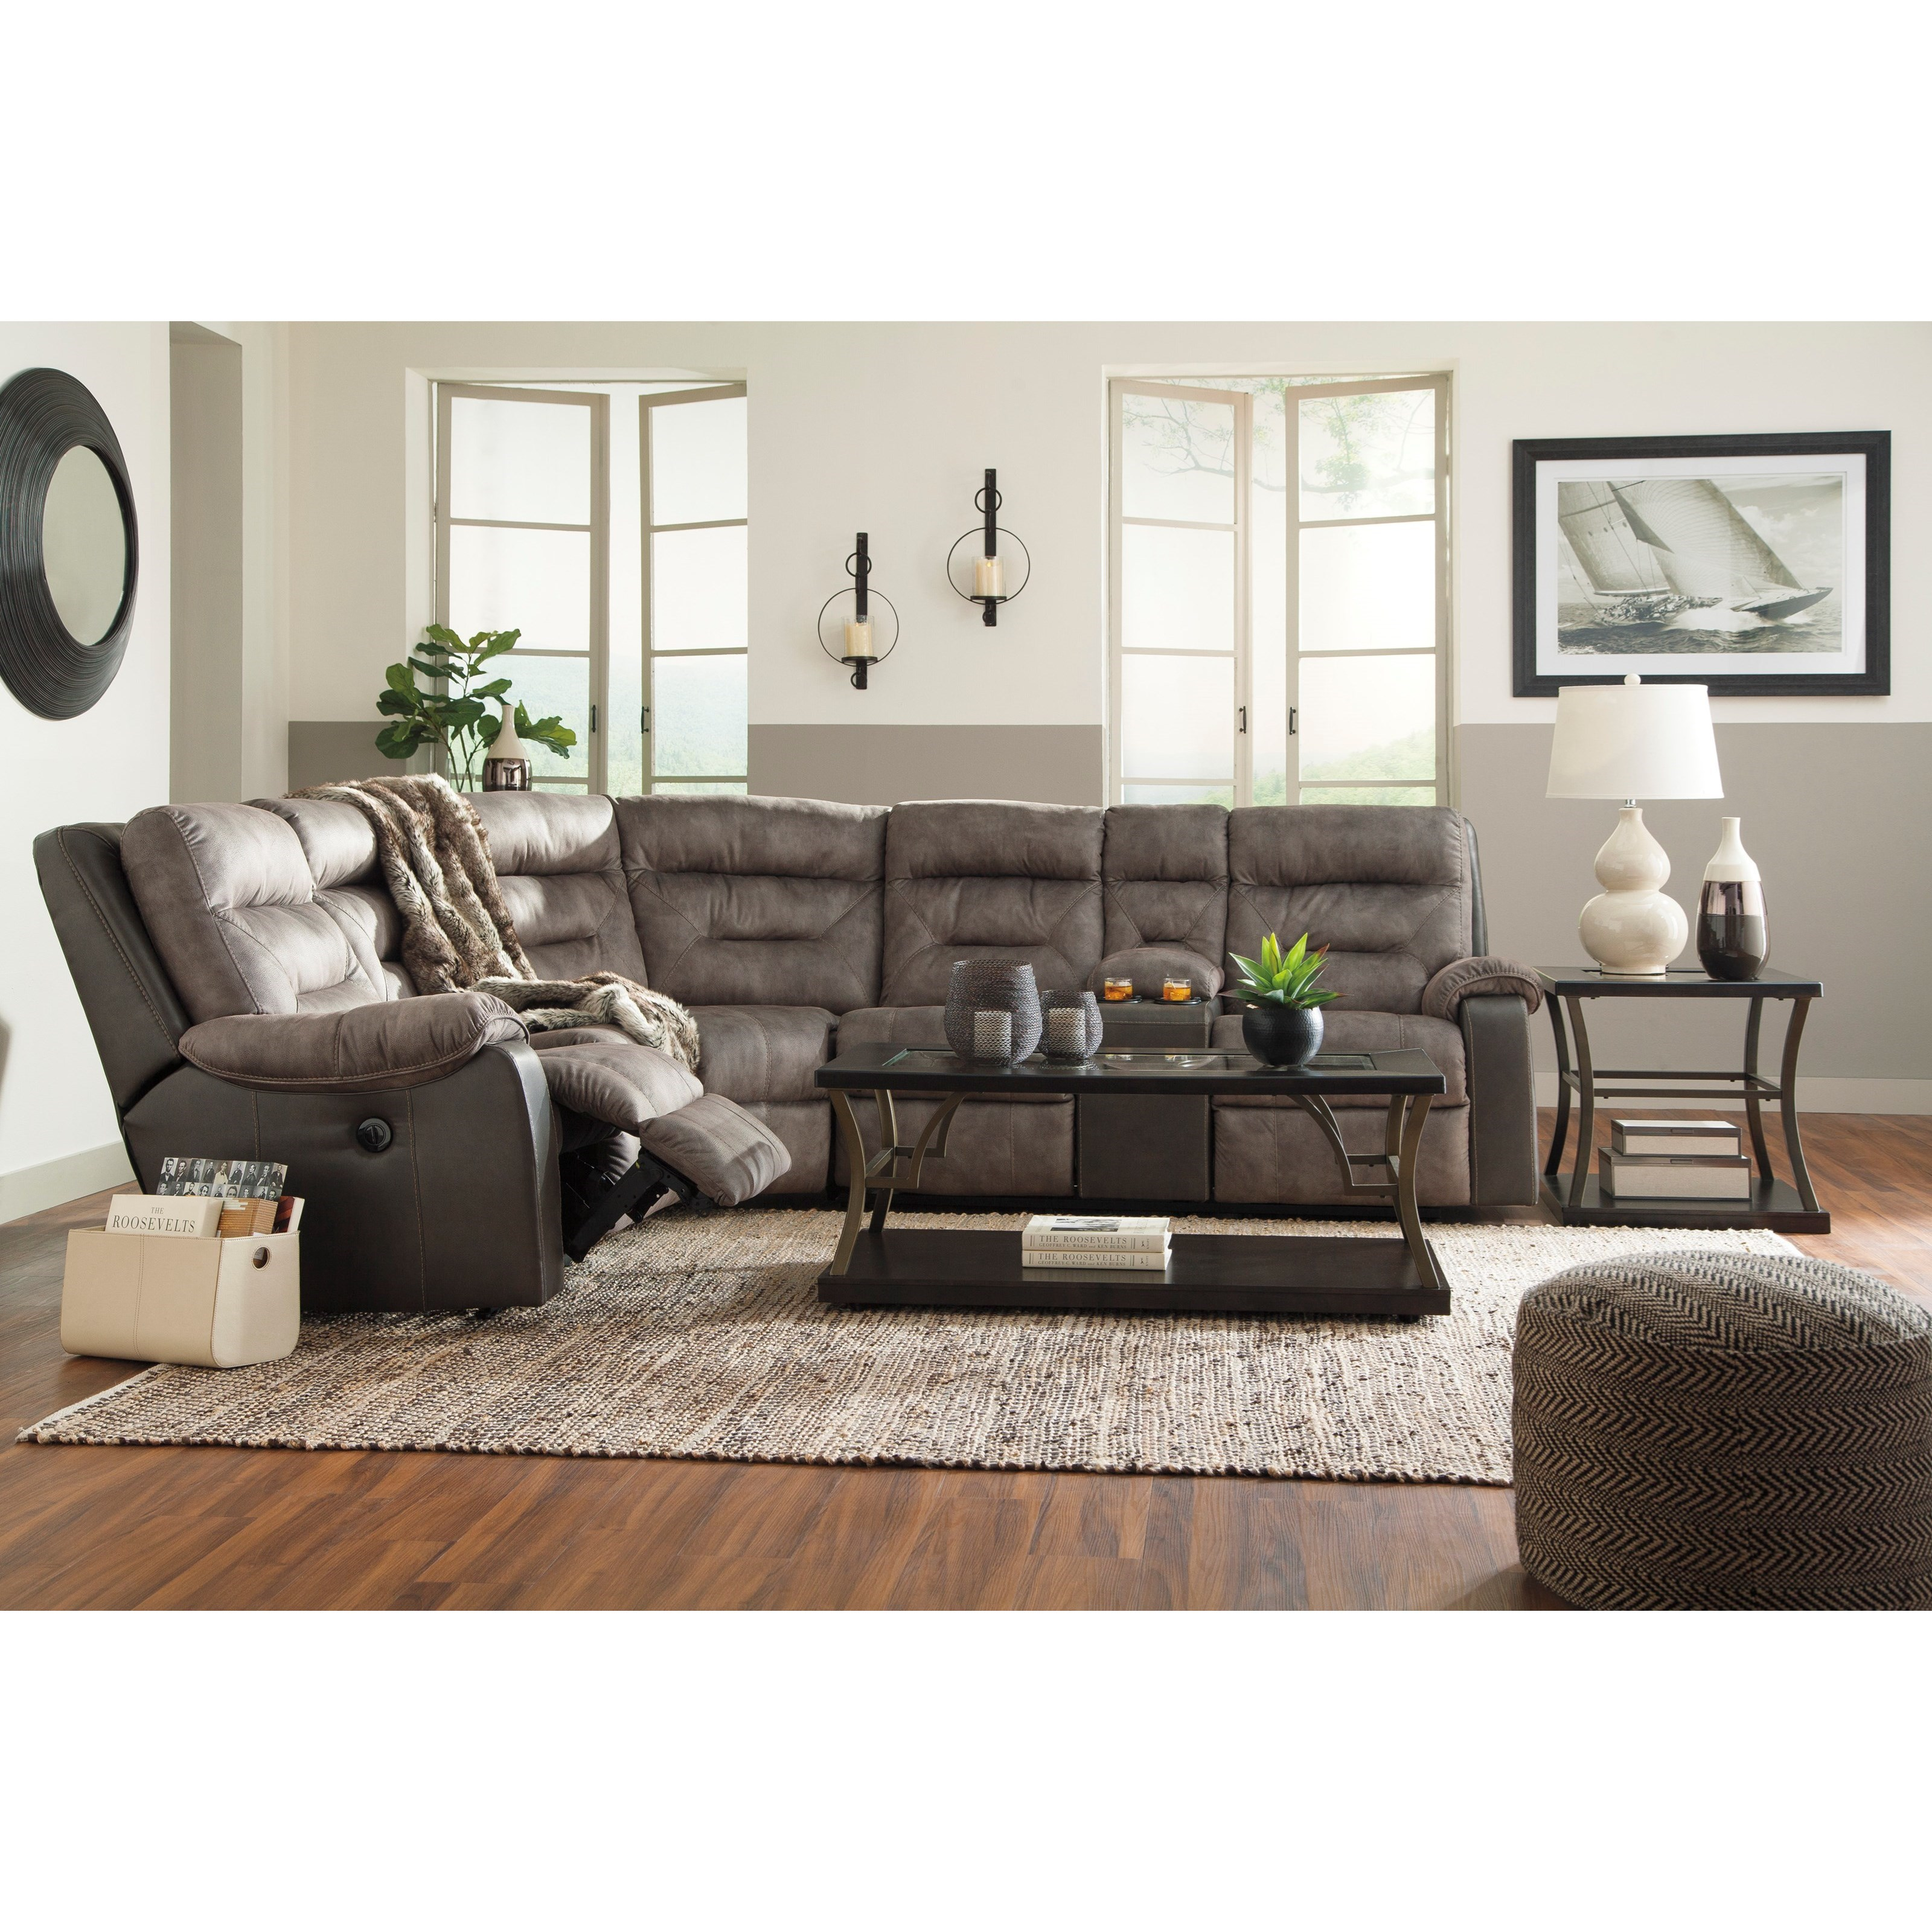 Two Tone Sofa Living Room Furniture: Benchcraft Hacklesbury Two-Tone Reclining Sectional With